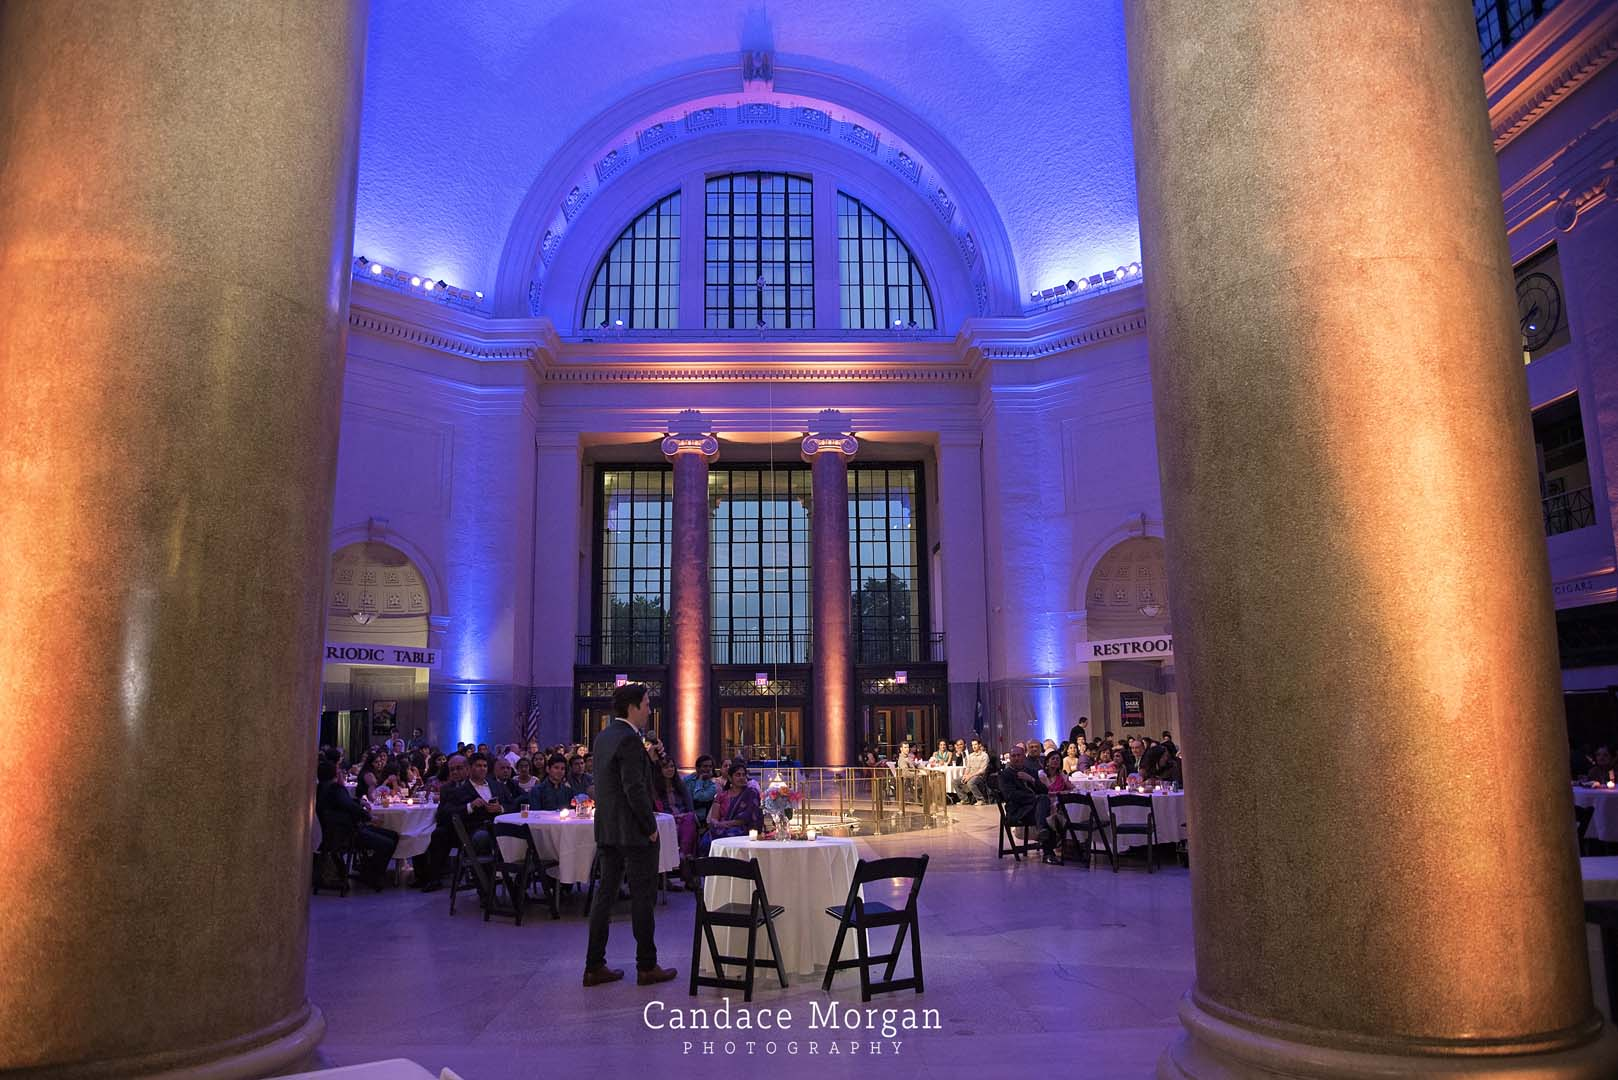 Wedding and event uplighting science museum richmond virginia